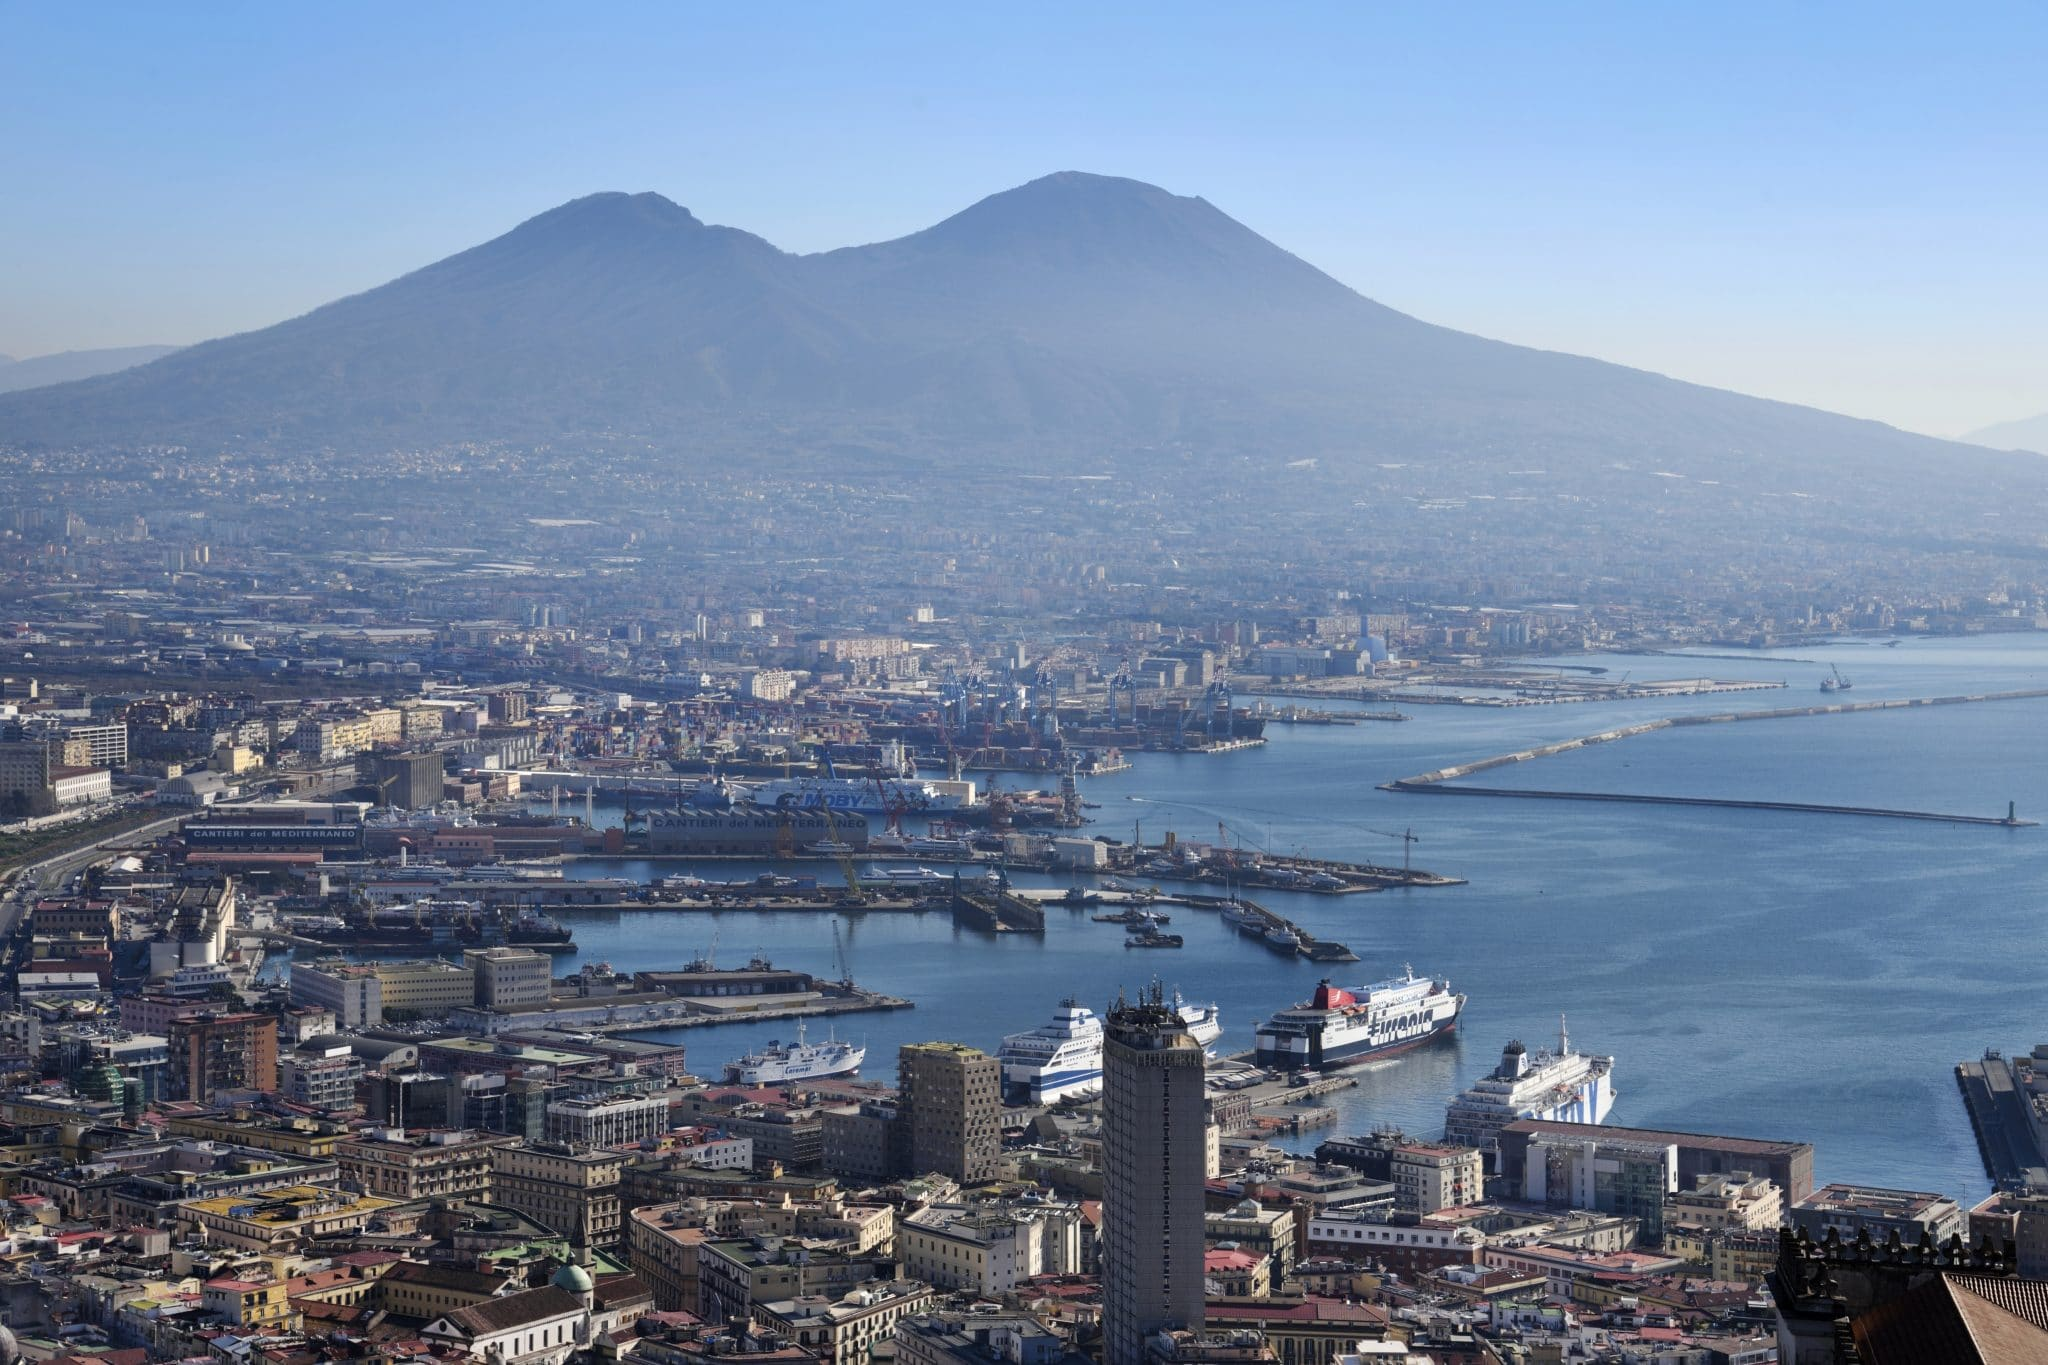 Panorama Over the City From Castel Sant'elmo. Naples. Campania. Italy. (Photo by: Claudio Ciabochi/Education Images/Universal Images Group via Getty Images)